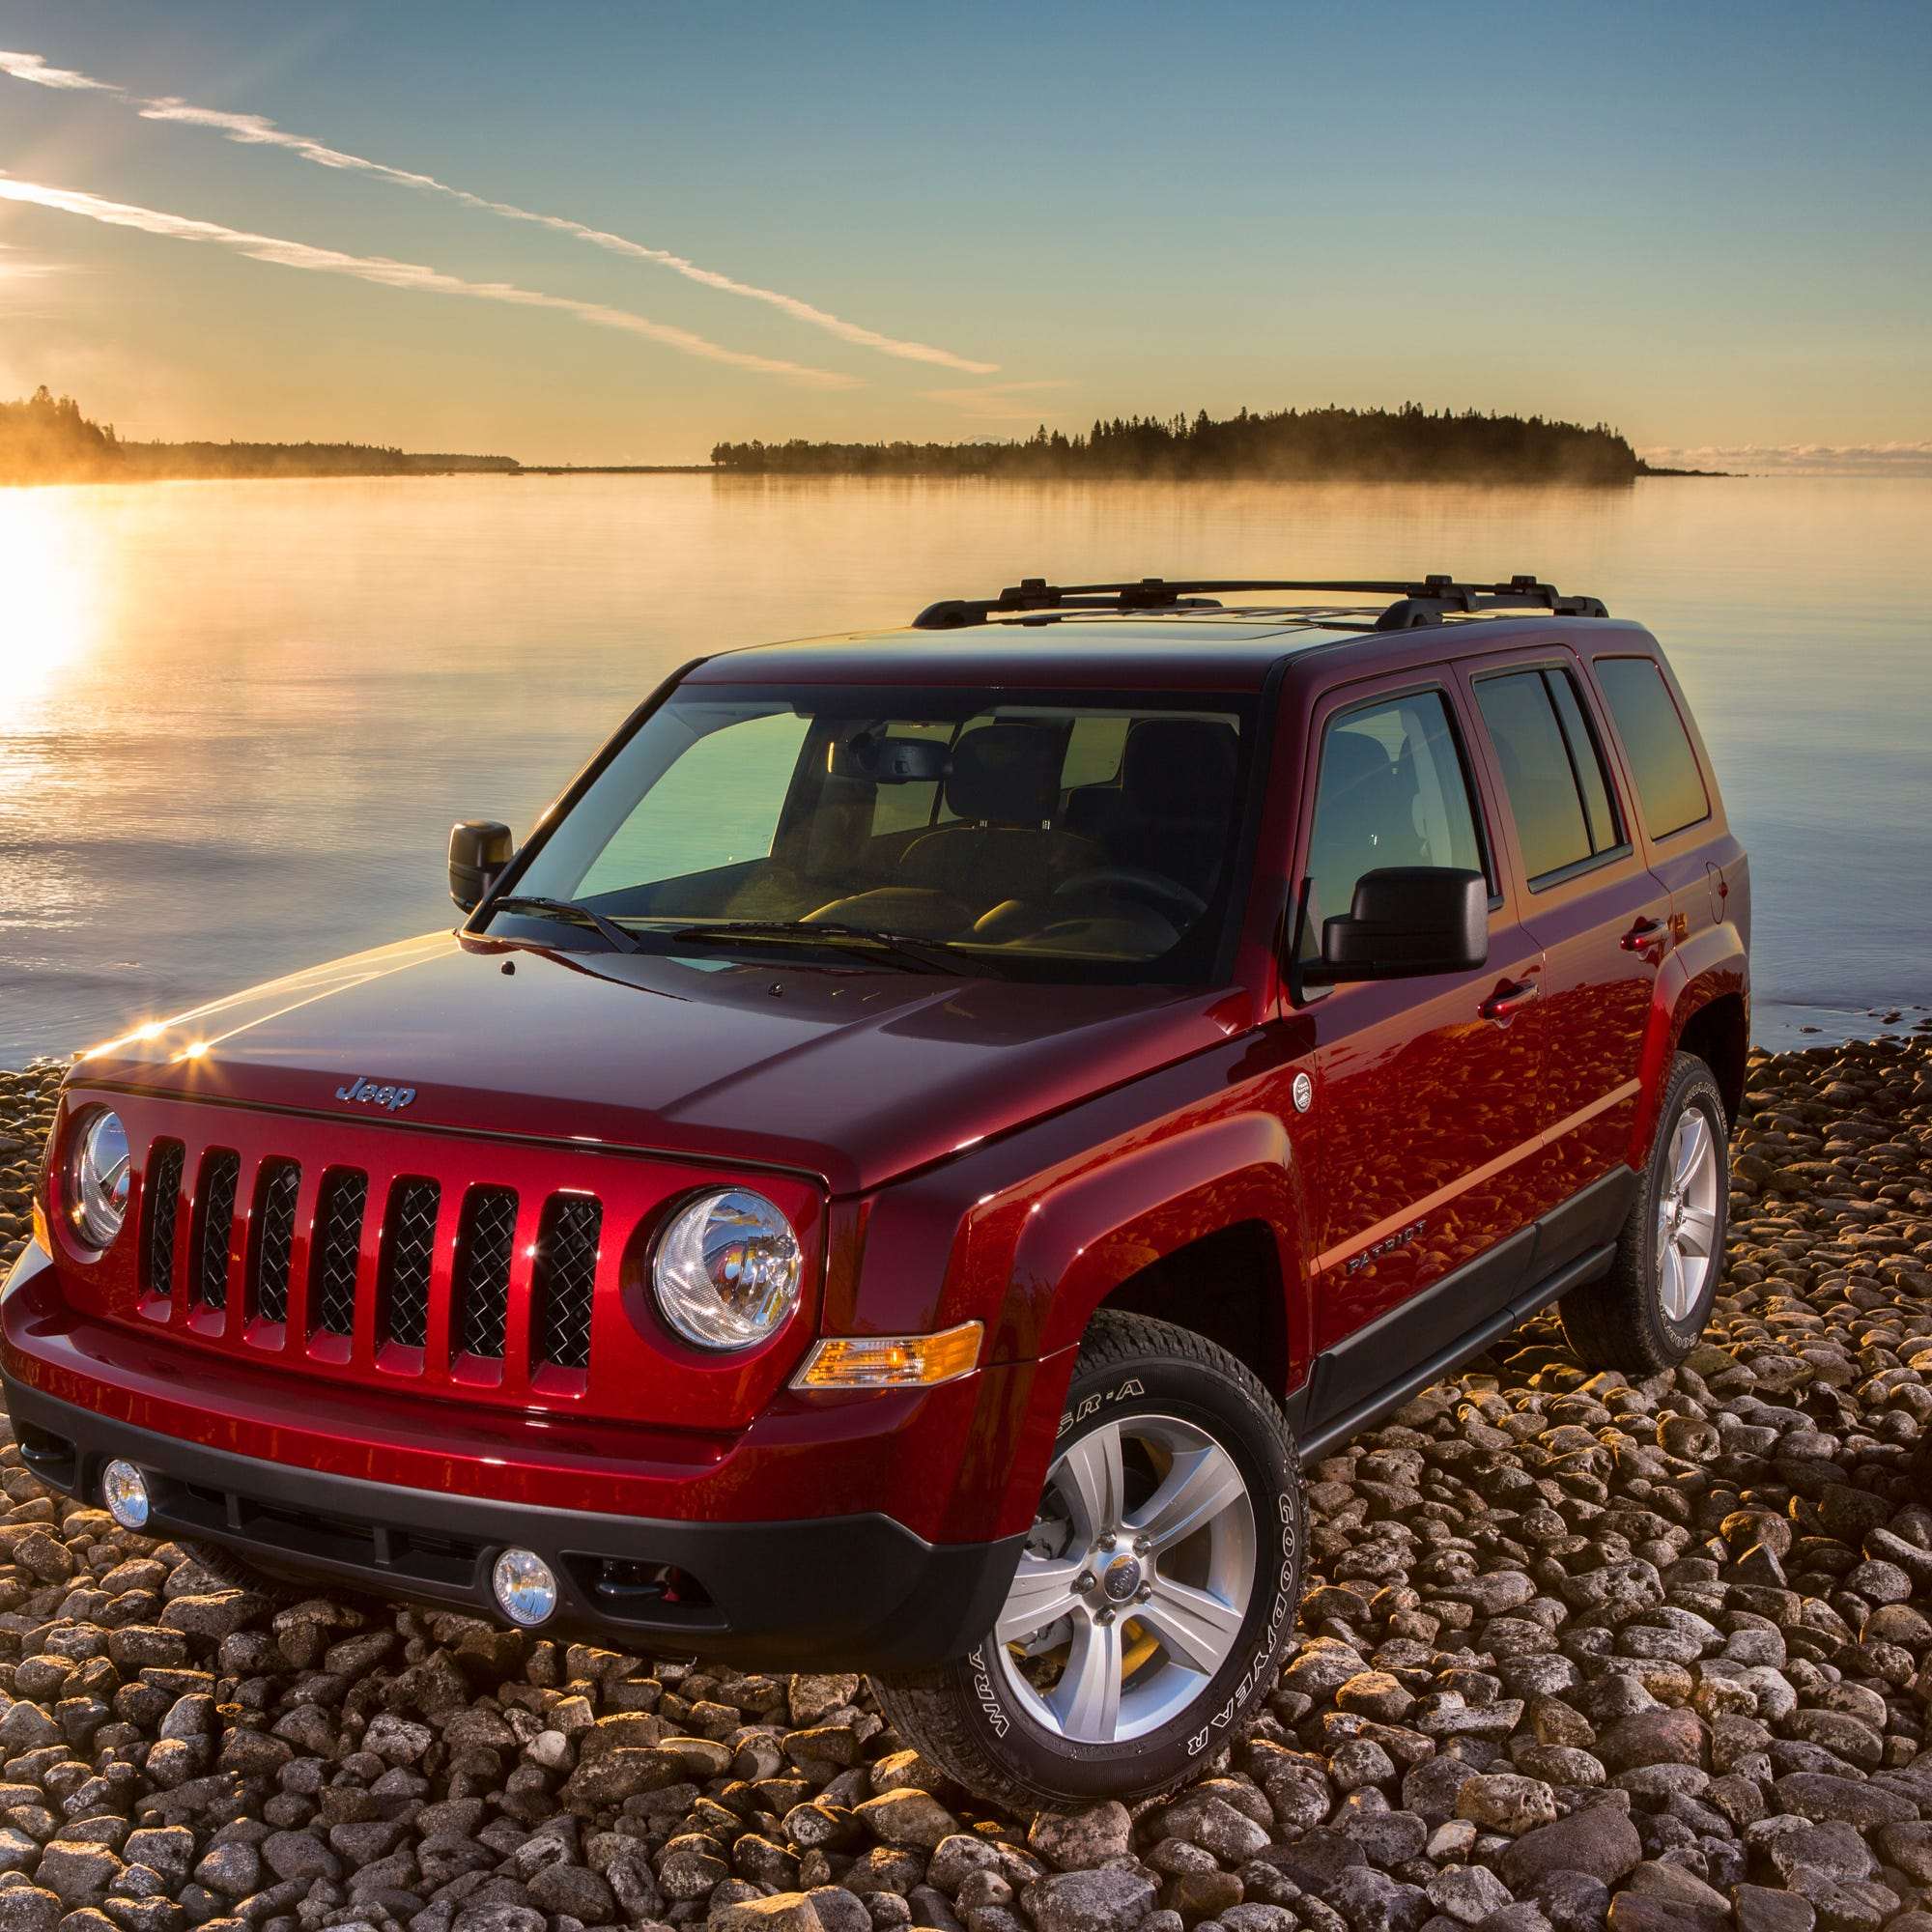 The 2014 Jeep Patriot is under investigation for...